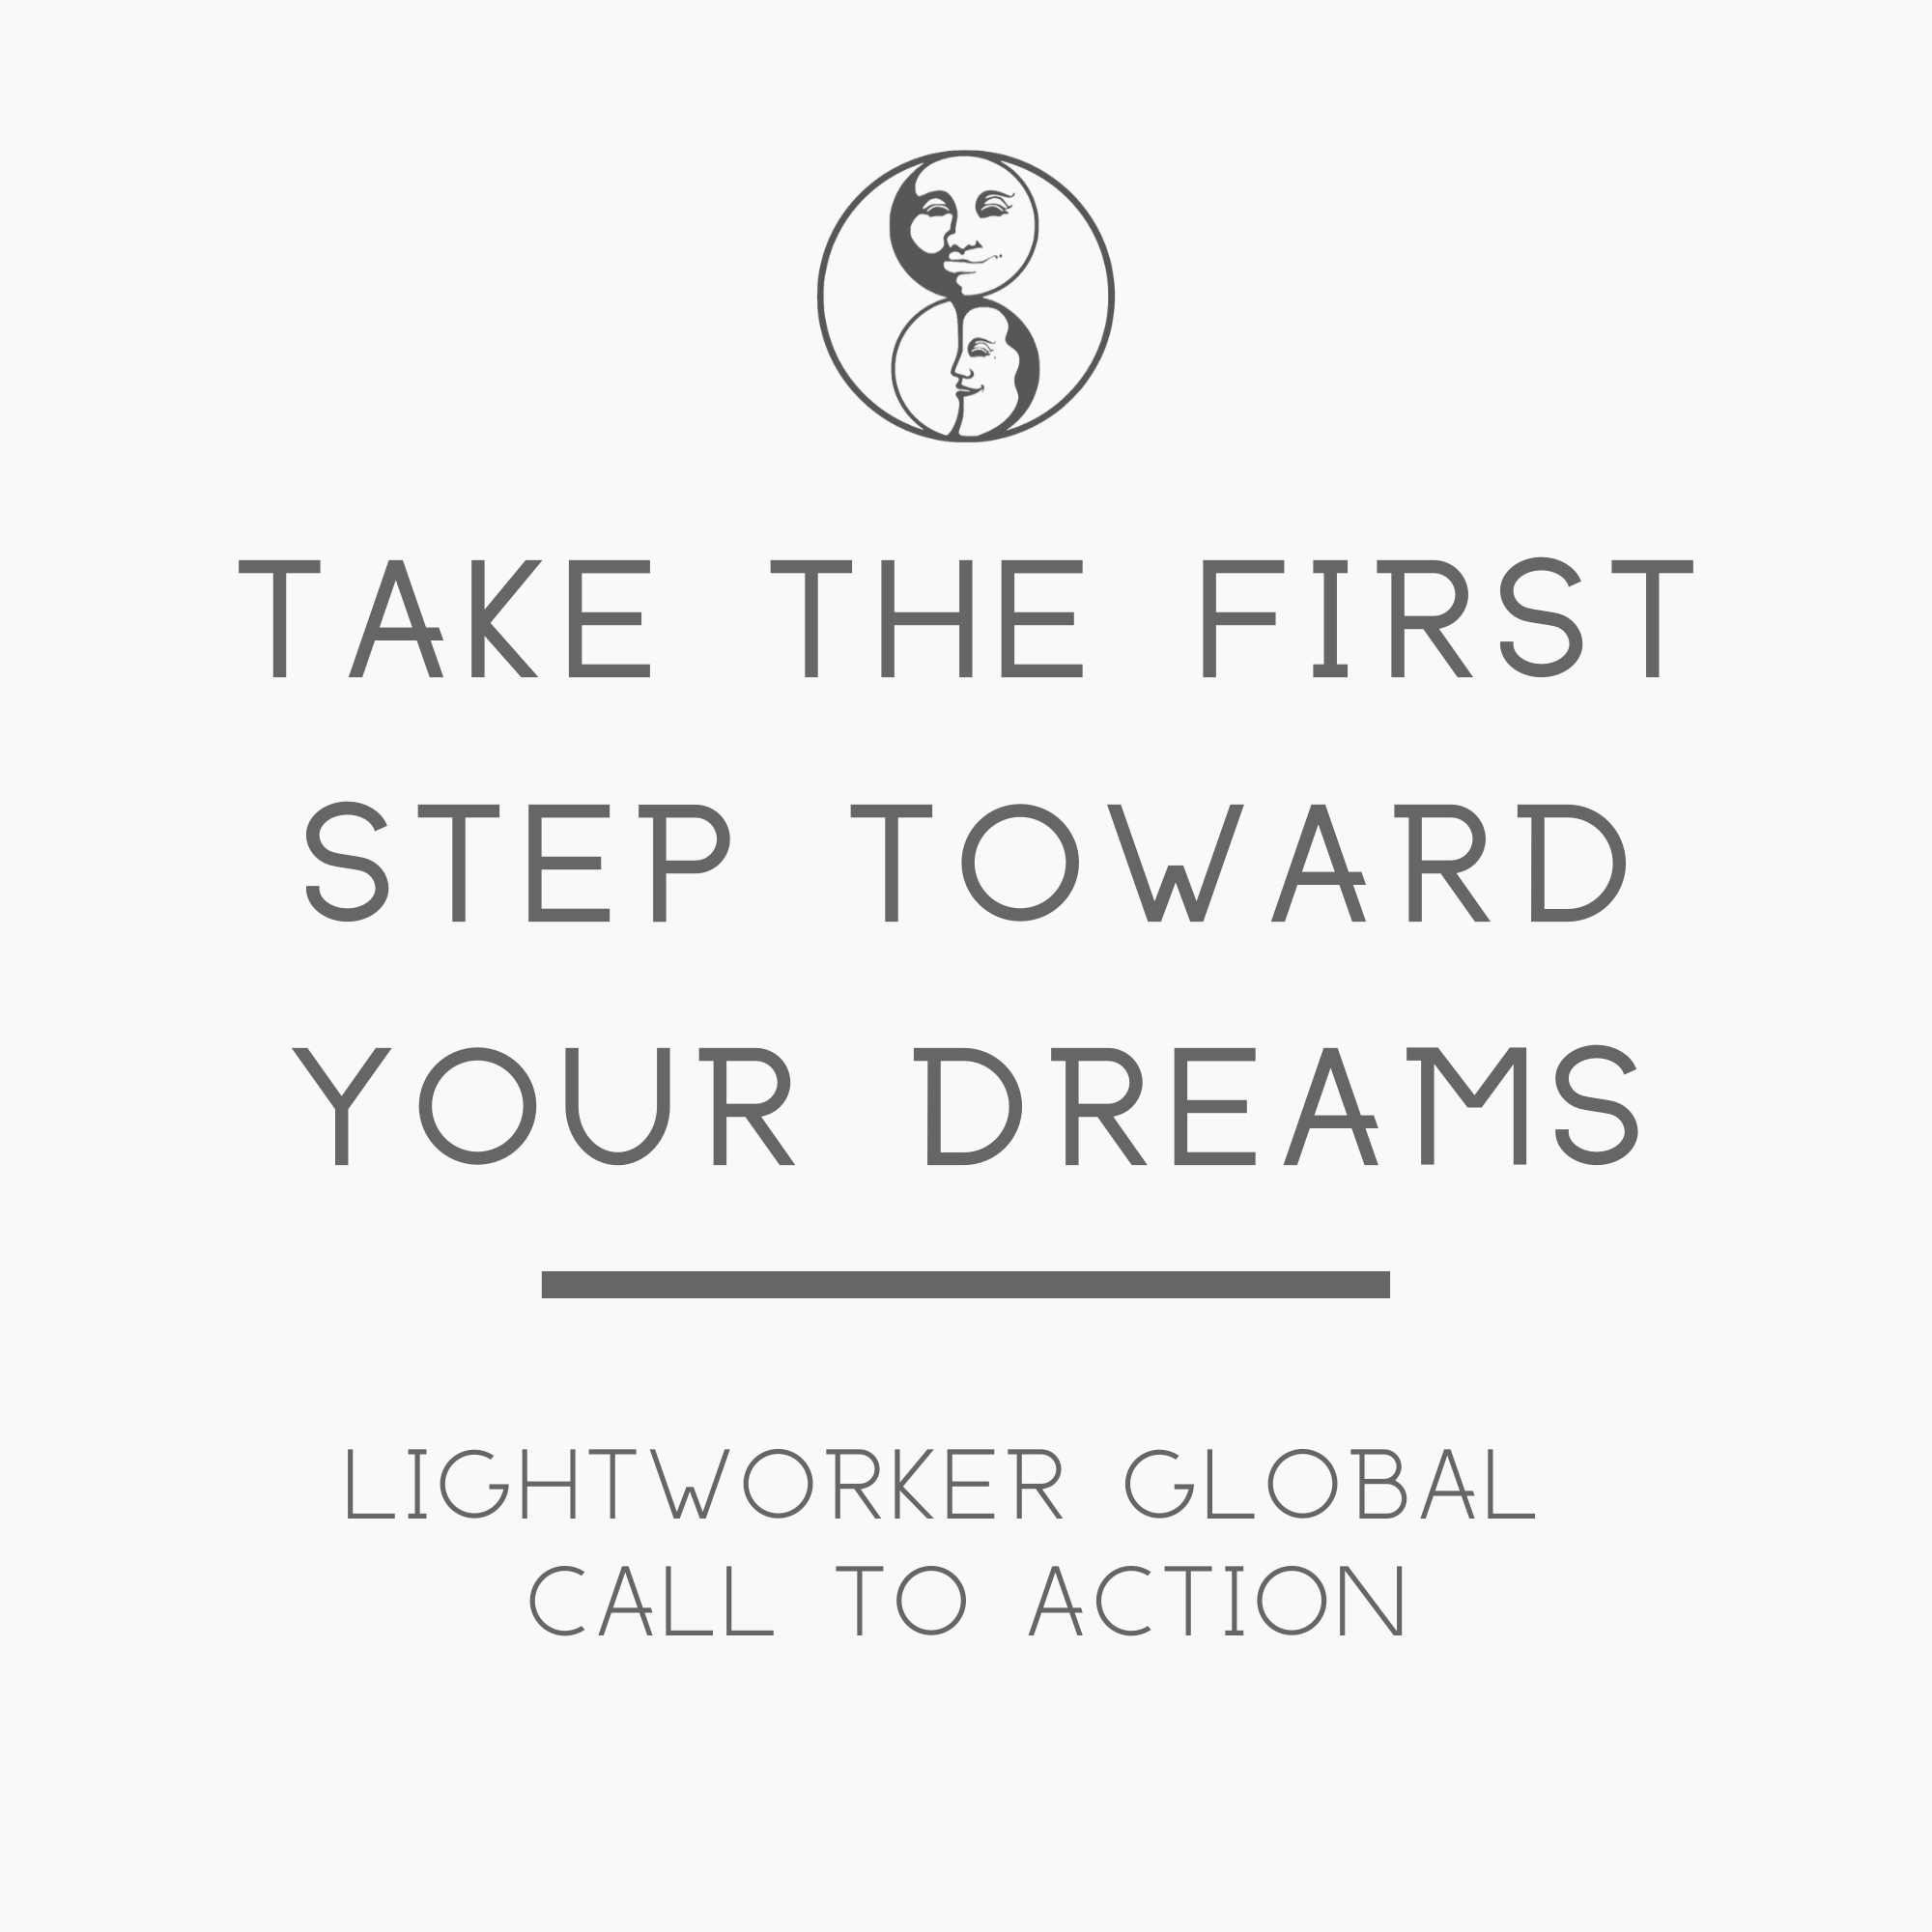 Take the First Step Toward Your Dreams